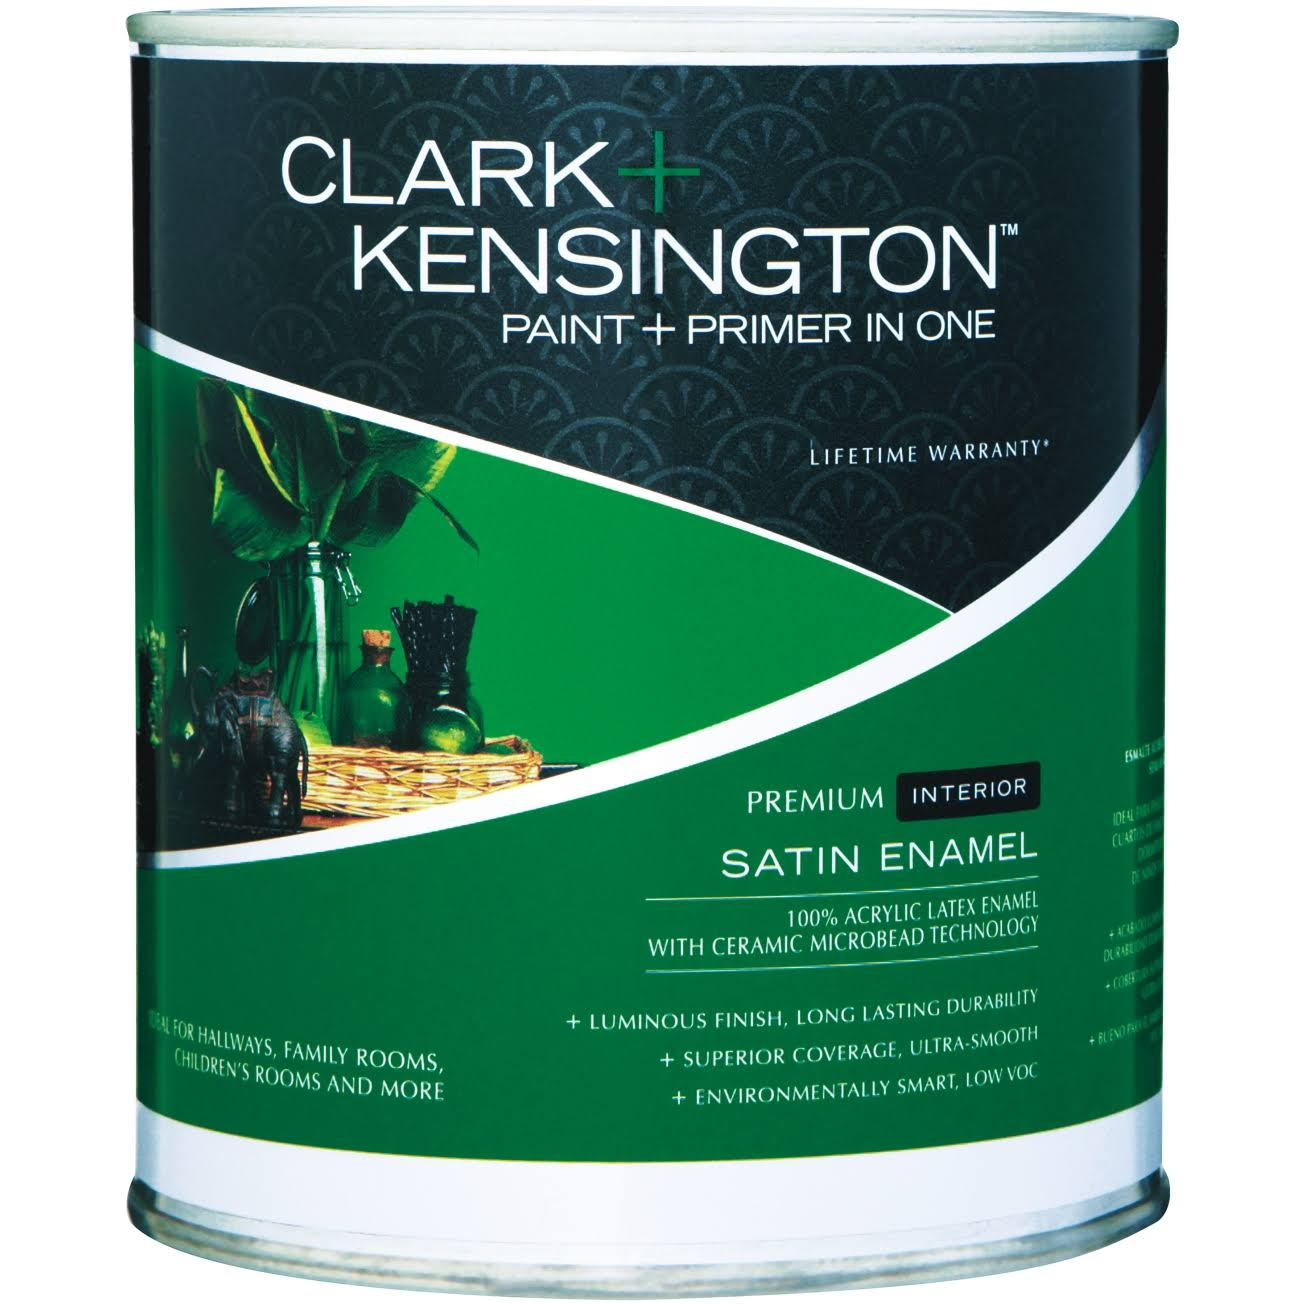 Clark+Kensington Paint and Primer in One - Satin Enamel